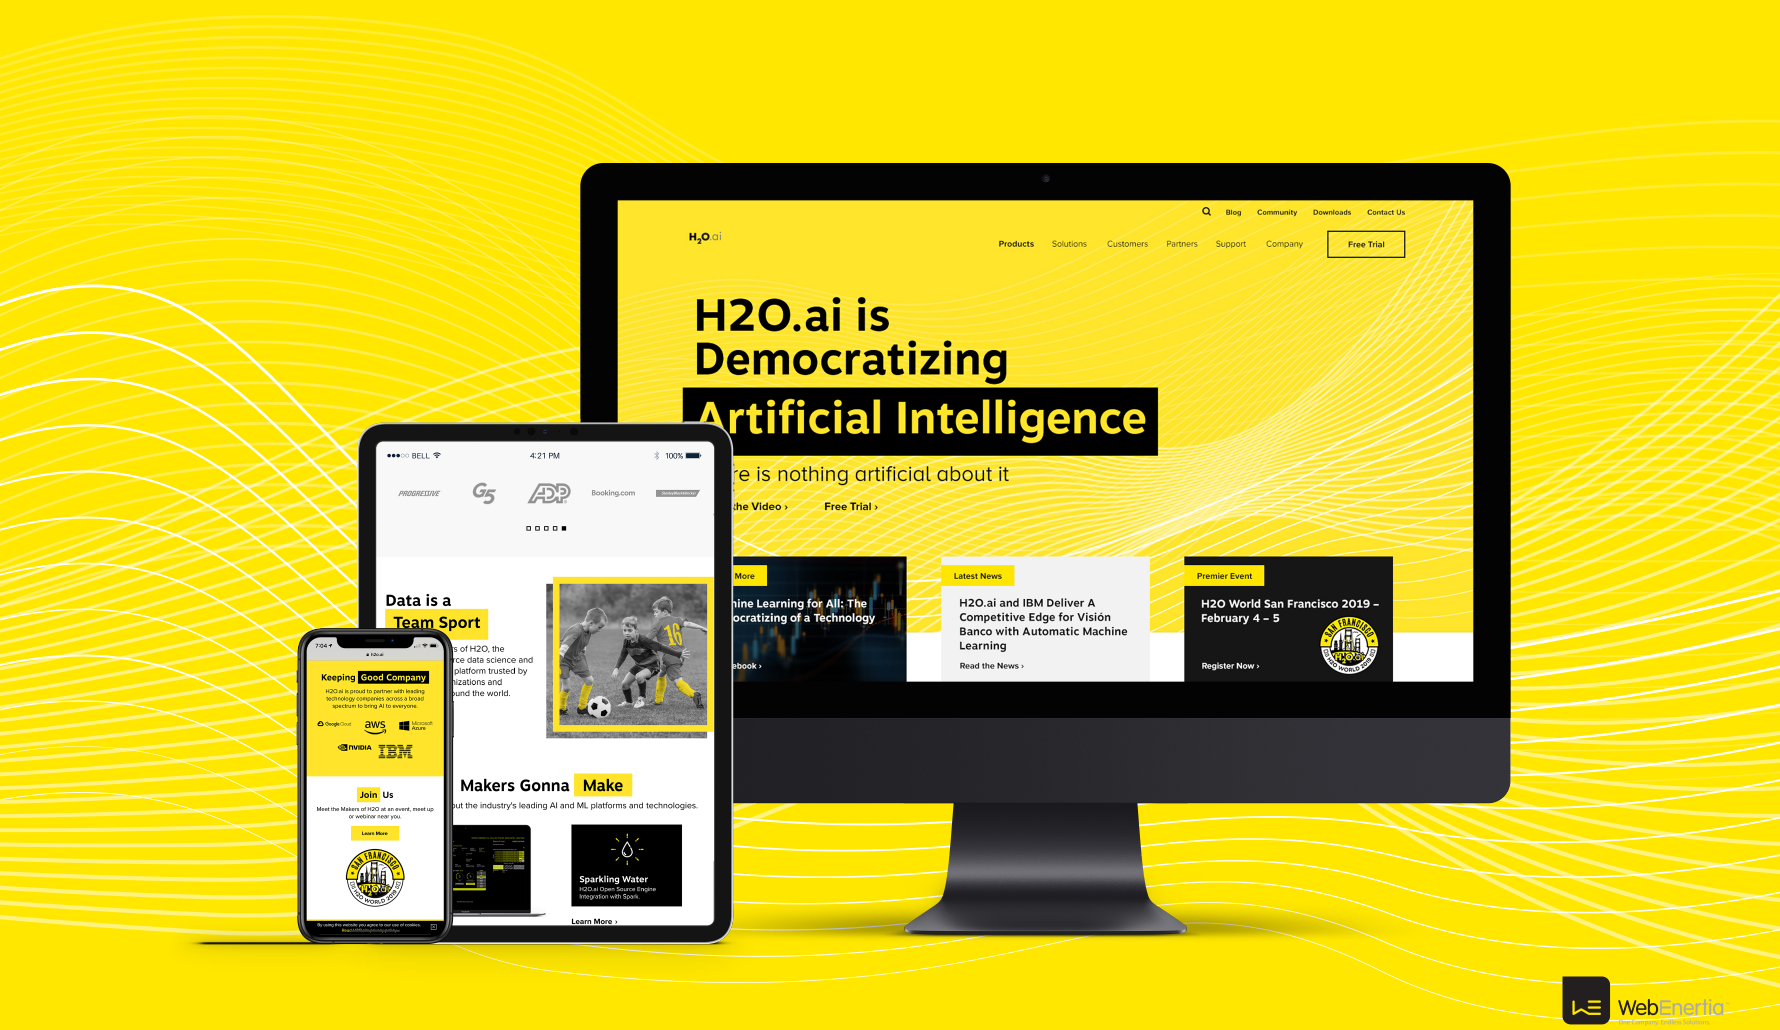 H2O.ai Brand Update & Guidelines new homepage responsive iMac iPad and iPhone